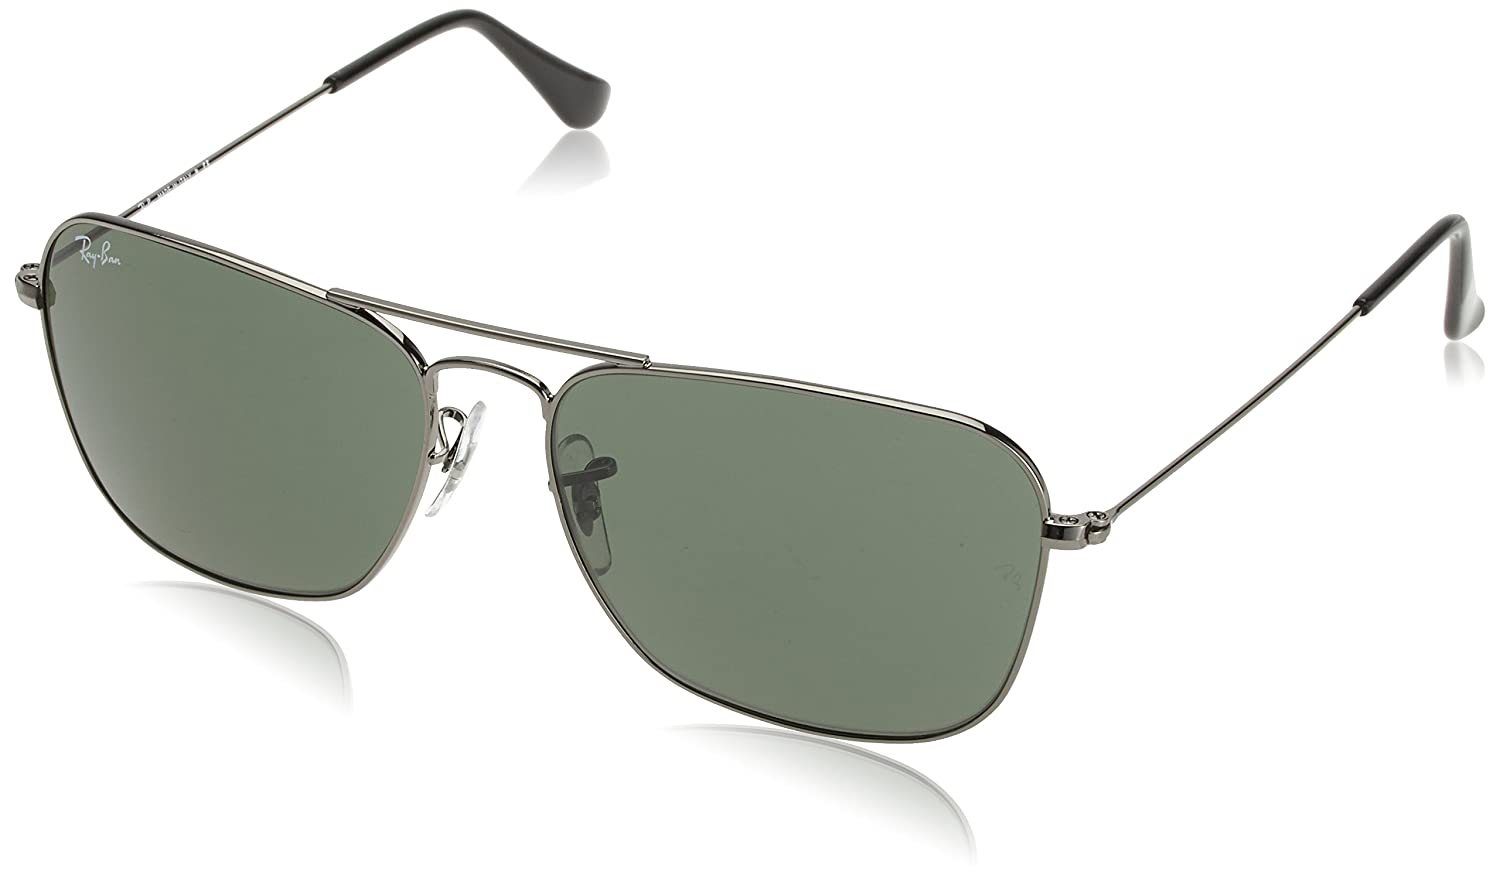 f4ca10dffd3 Amazon.com  Ray-Ban Men s Caravan Non-Polarized Rectangular Sunglasses